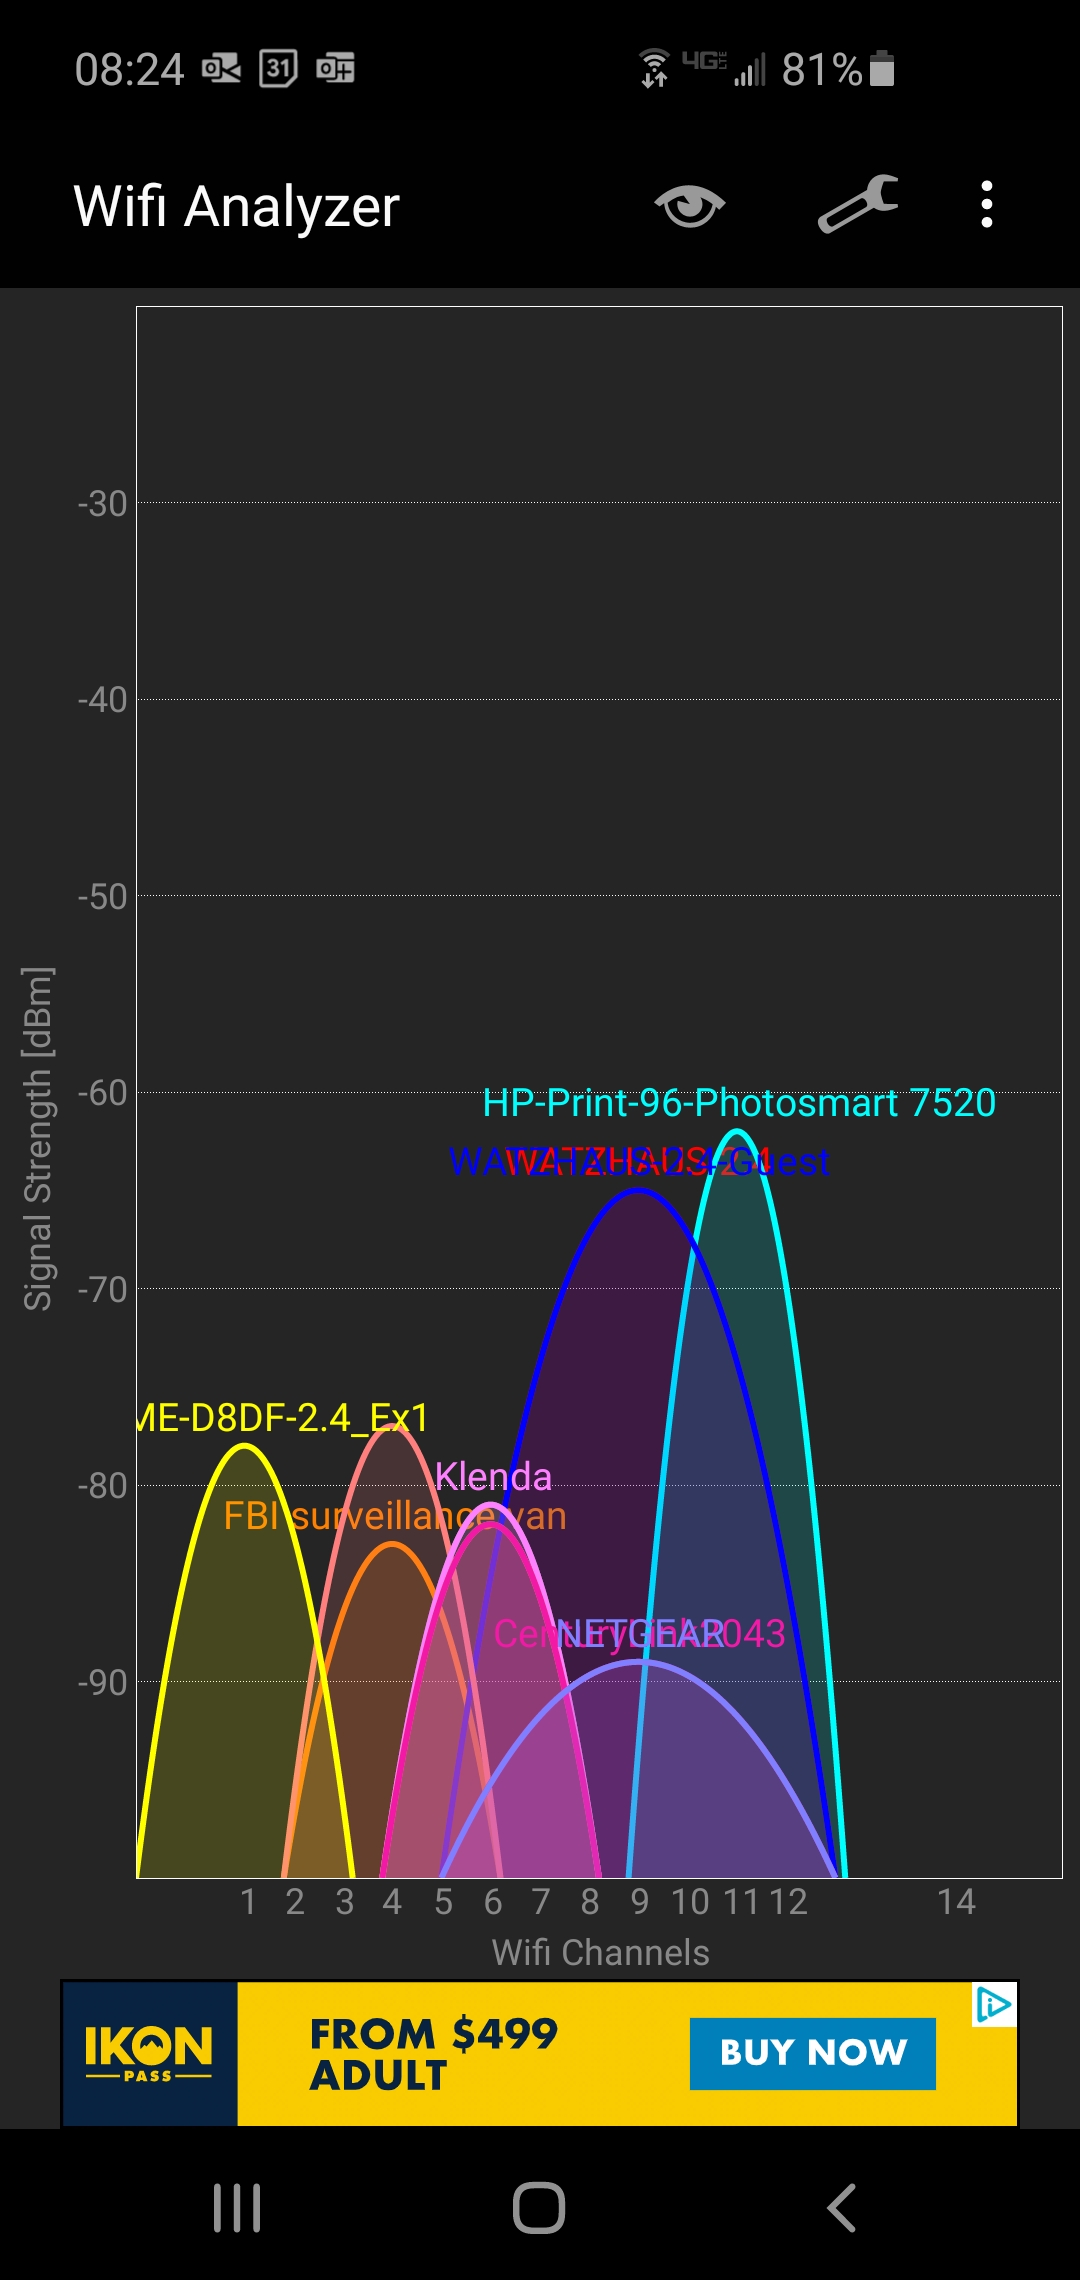 Screenshot_20201124-082434_Wifi Analyzer.jpg